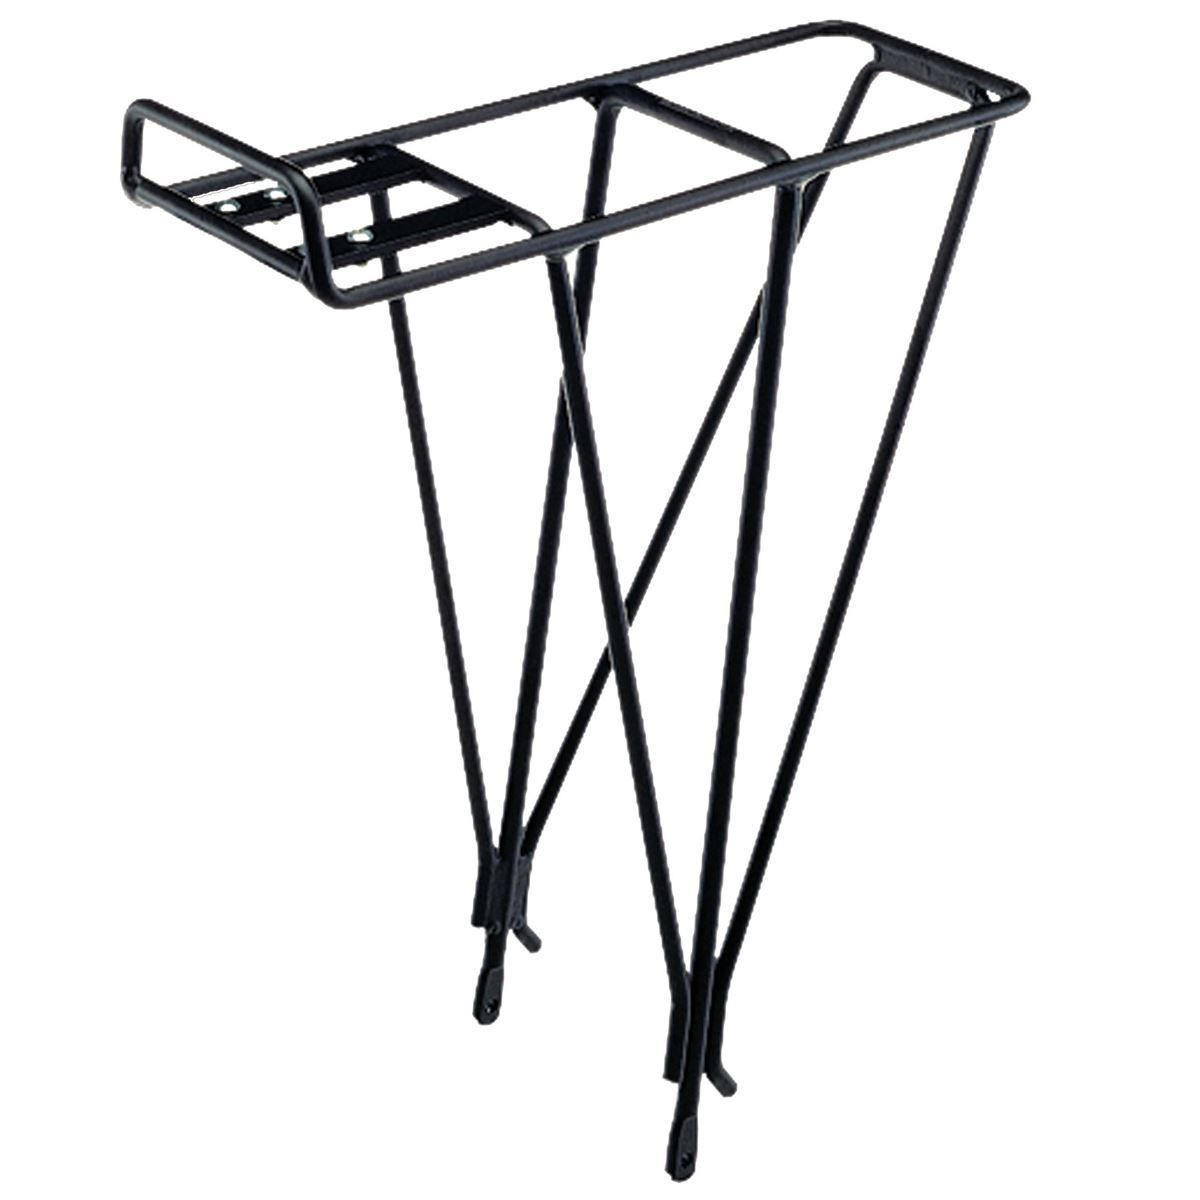 Expedition 1 Rear Rack 2018: Black